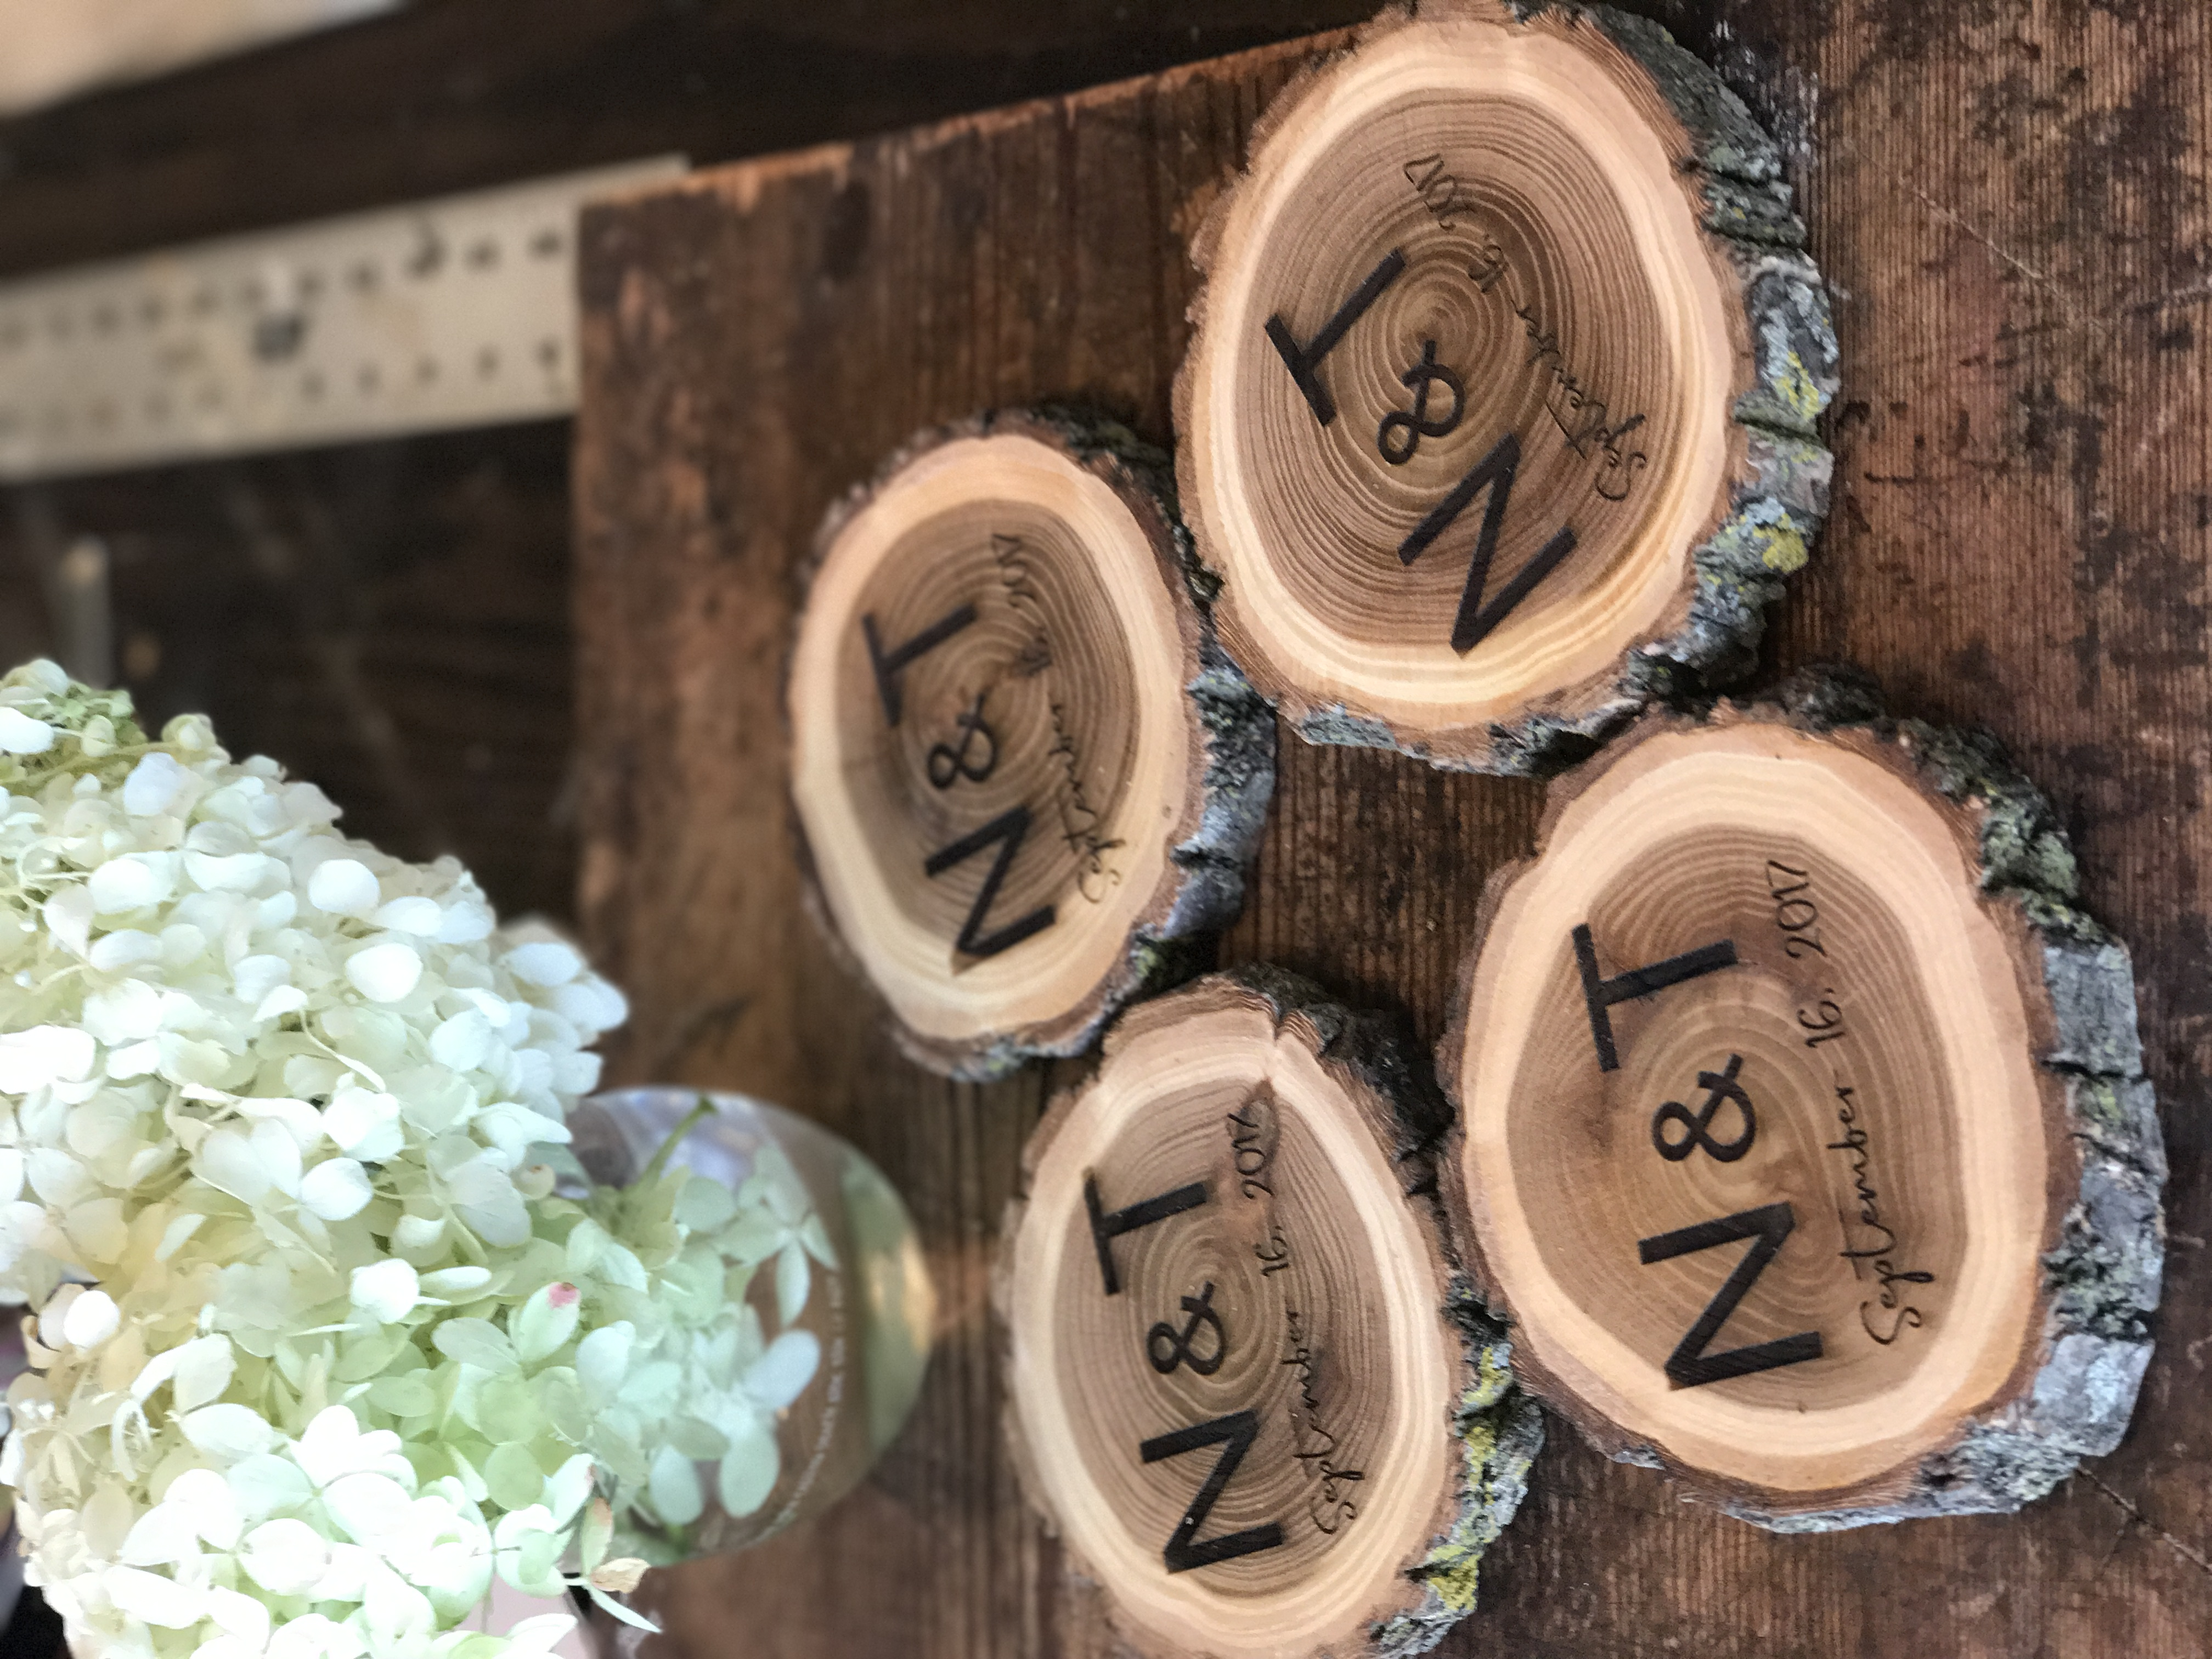 Custom Wood Slice Coasters